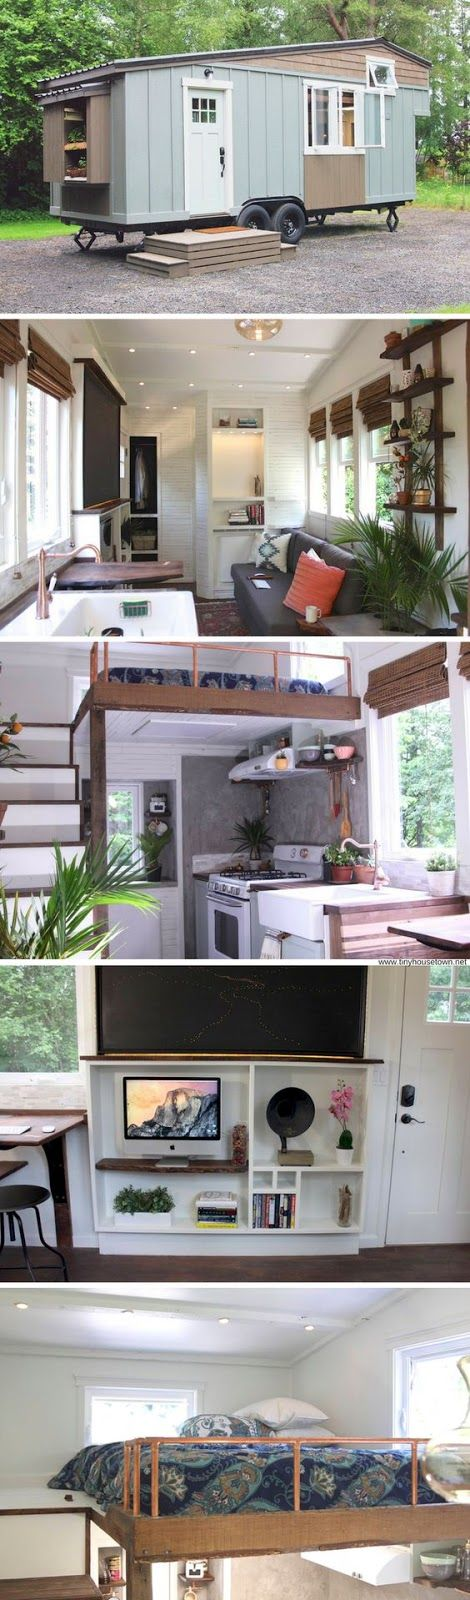 Tiny House And Small Space Living: